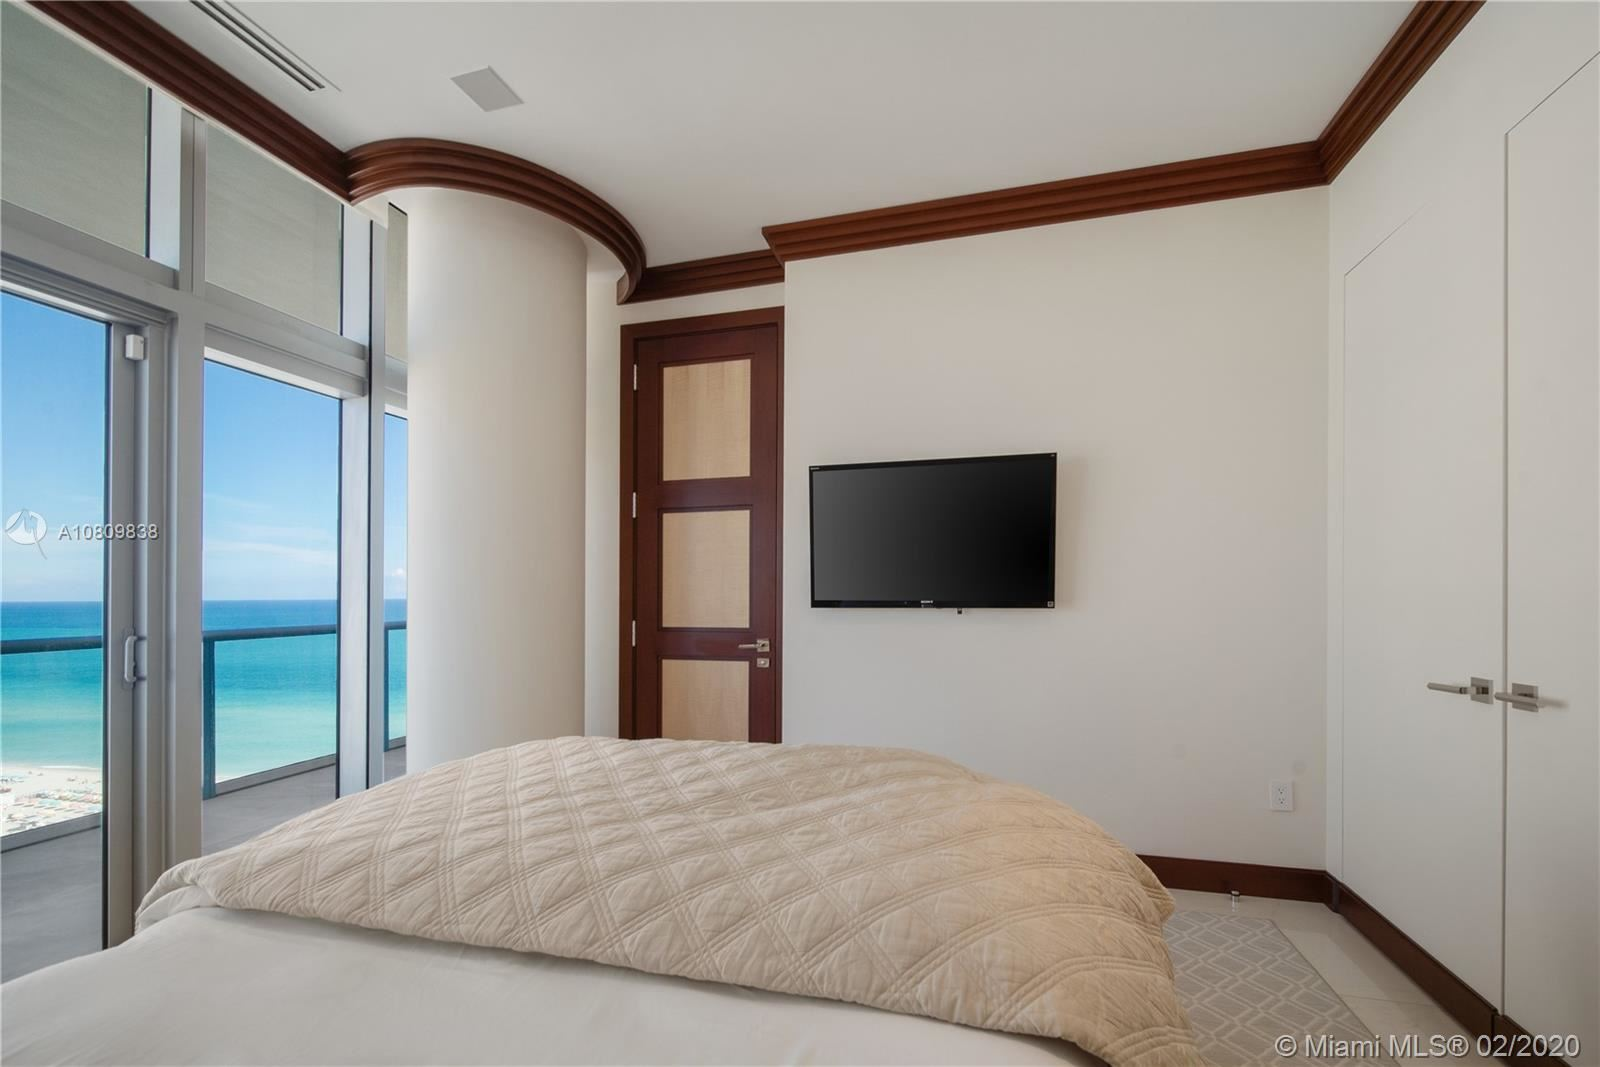 Photo 23 of Listing MLS a10809838 in 3737 Collins Ave #PH-4 Miami Beach FL 33140